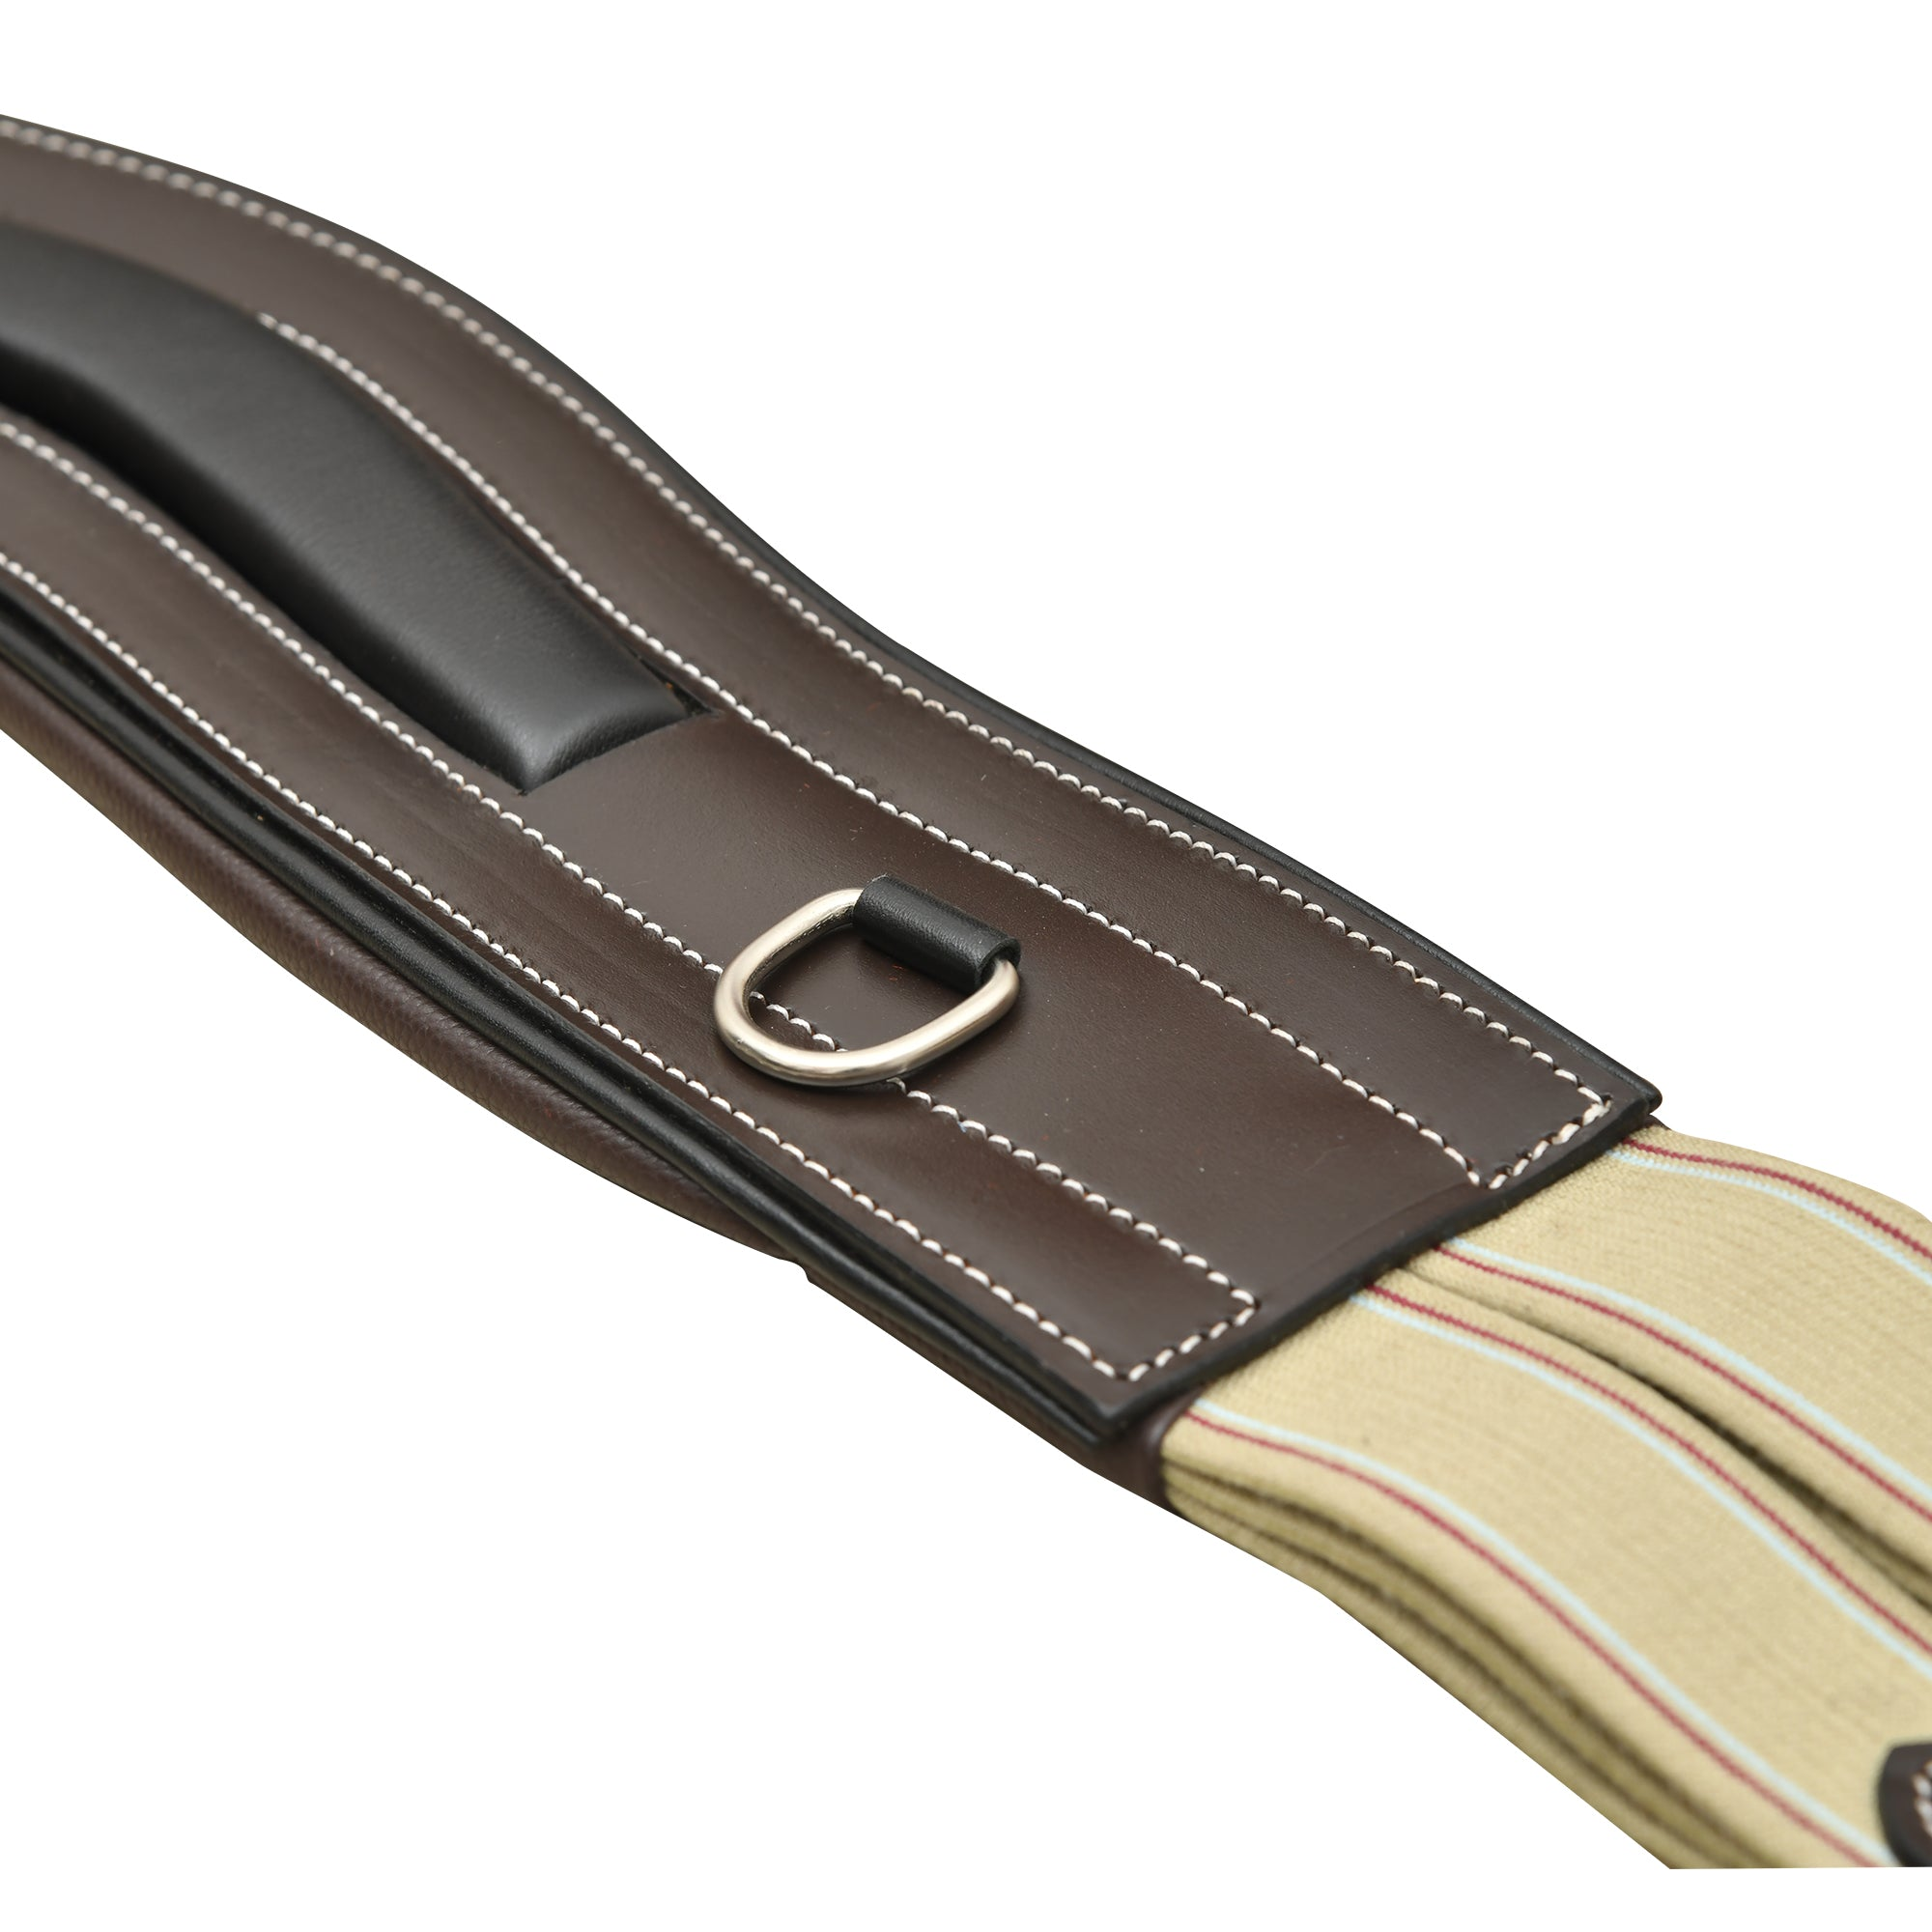 SIE Anatomic Window Leather Girths